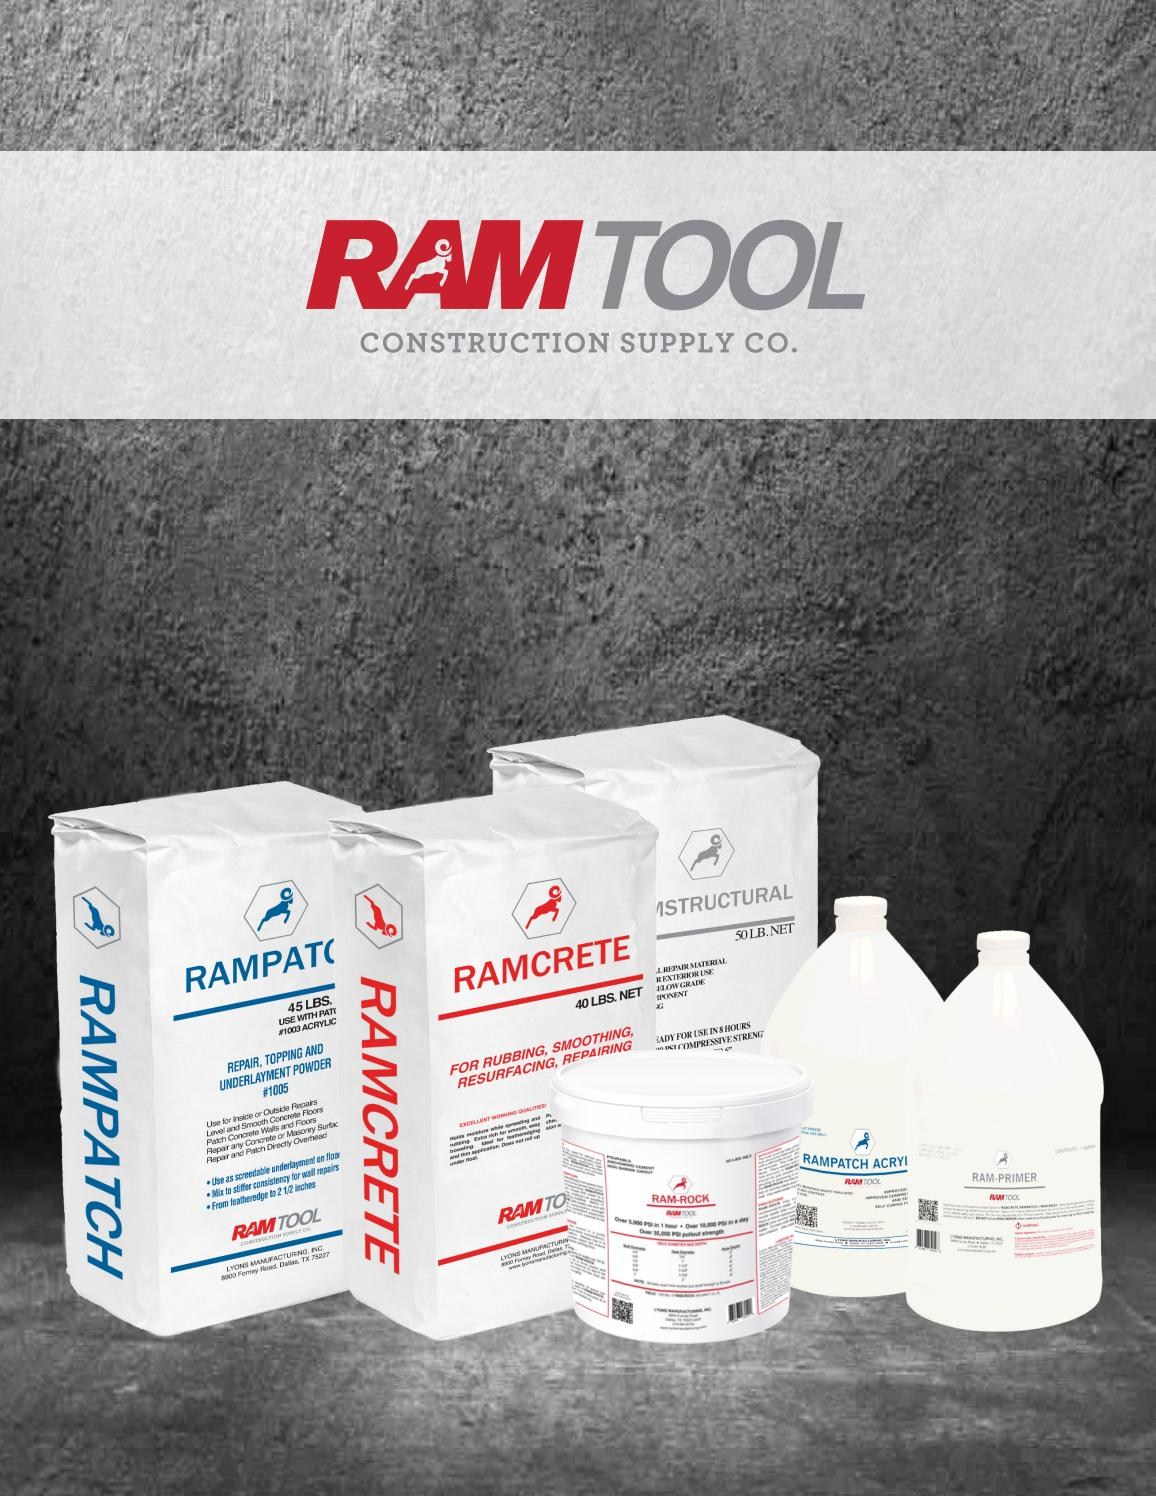 Private Label Concrete Booklet By Ram Tool Construction